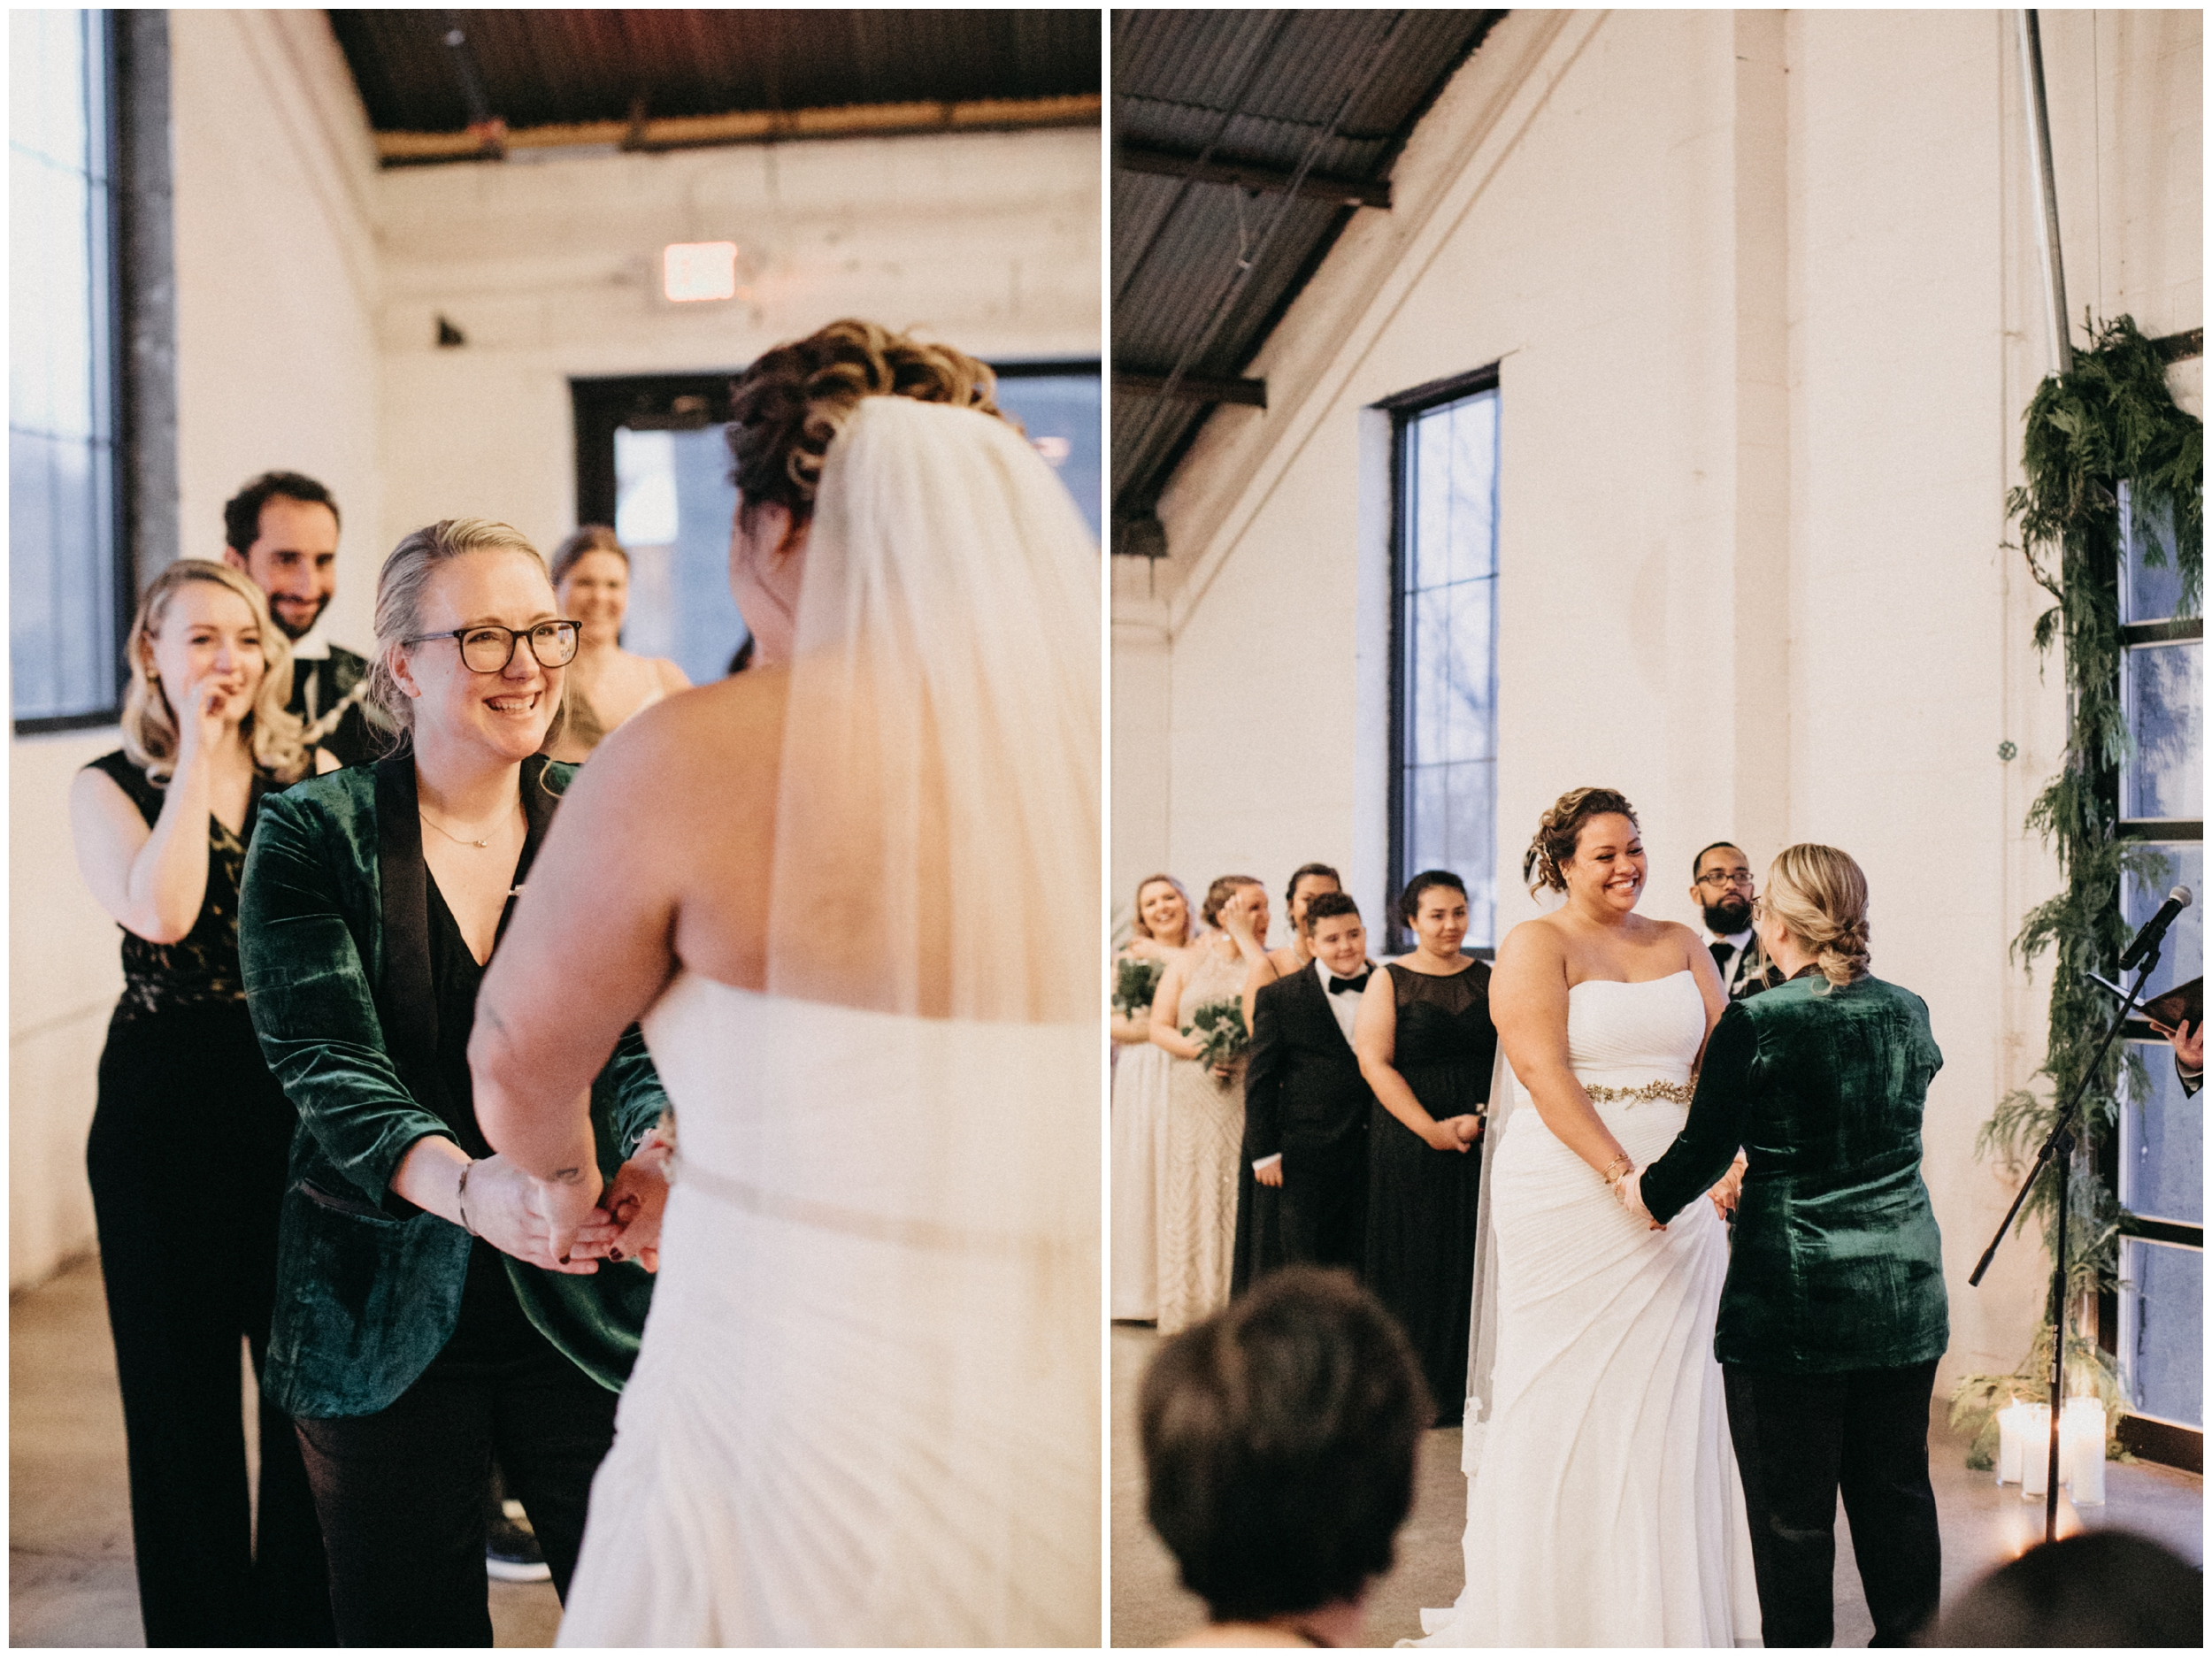 Emotional wedding ceremony at Paikka in St Paul Minnesota